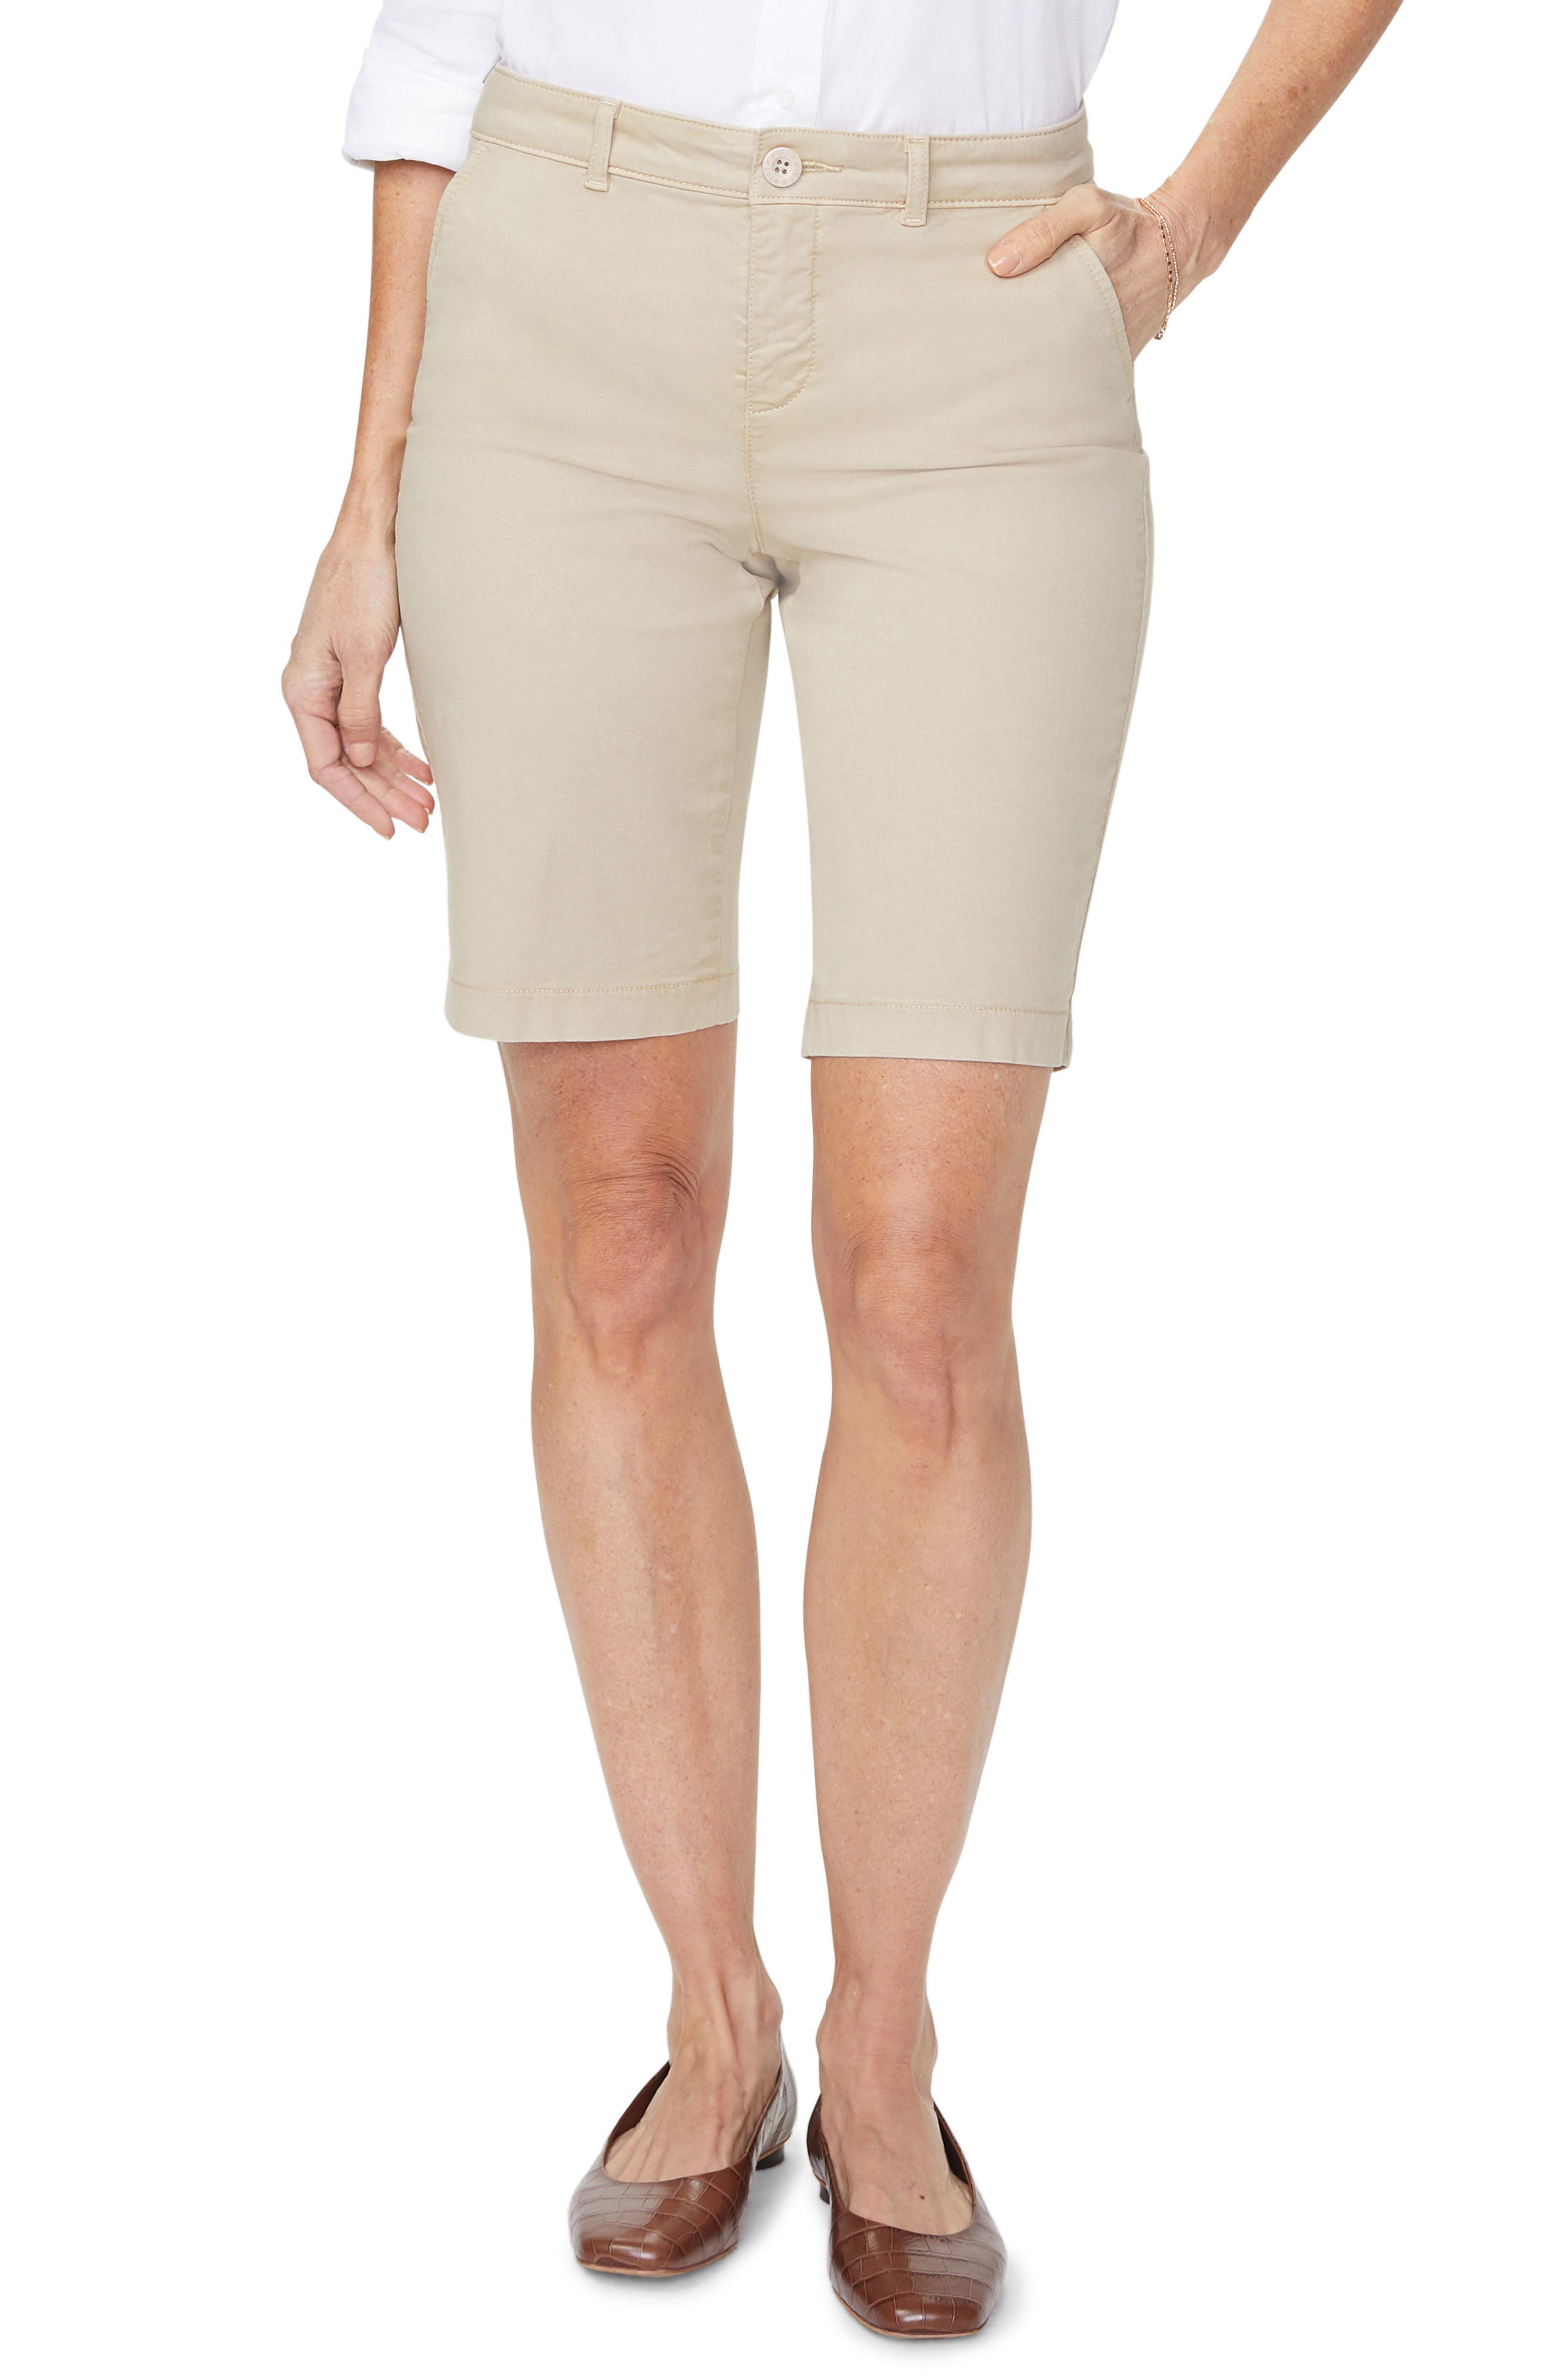 Petite Women's Nydj Stretch Cotton Blend Twill Bermuda Shorts,  10P - Beige